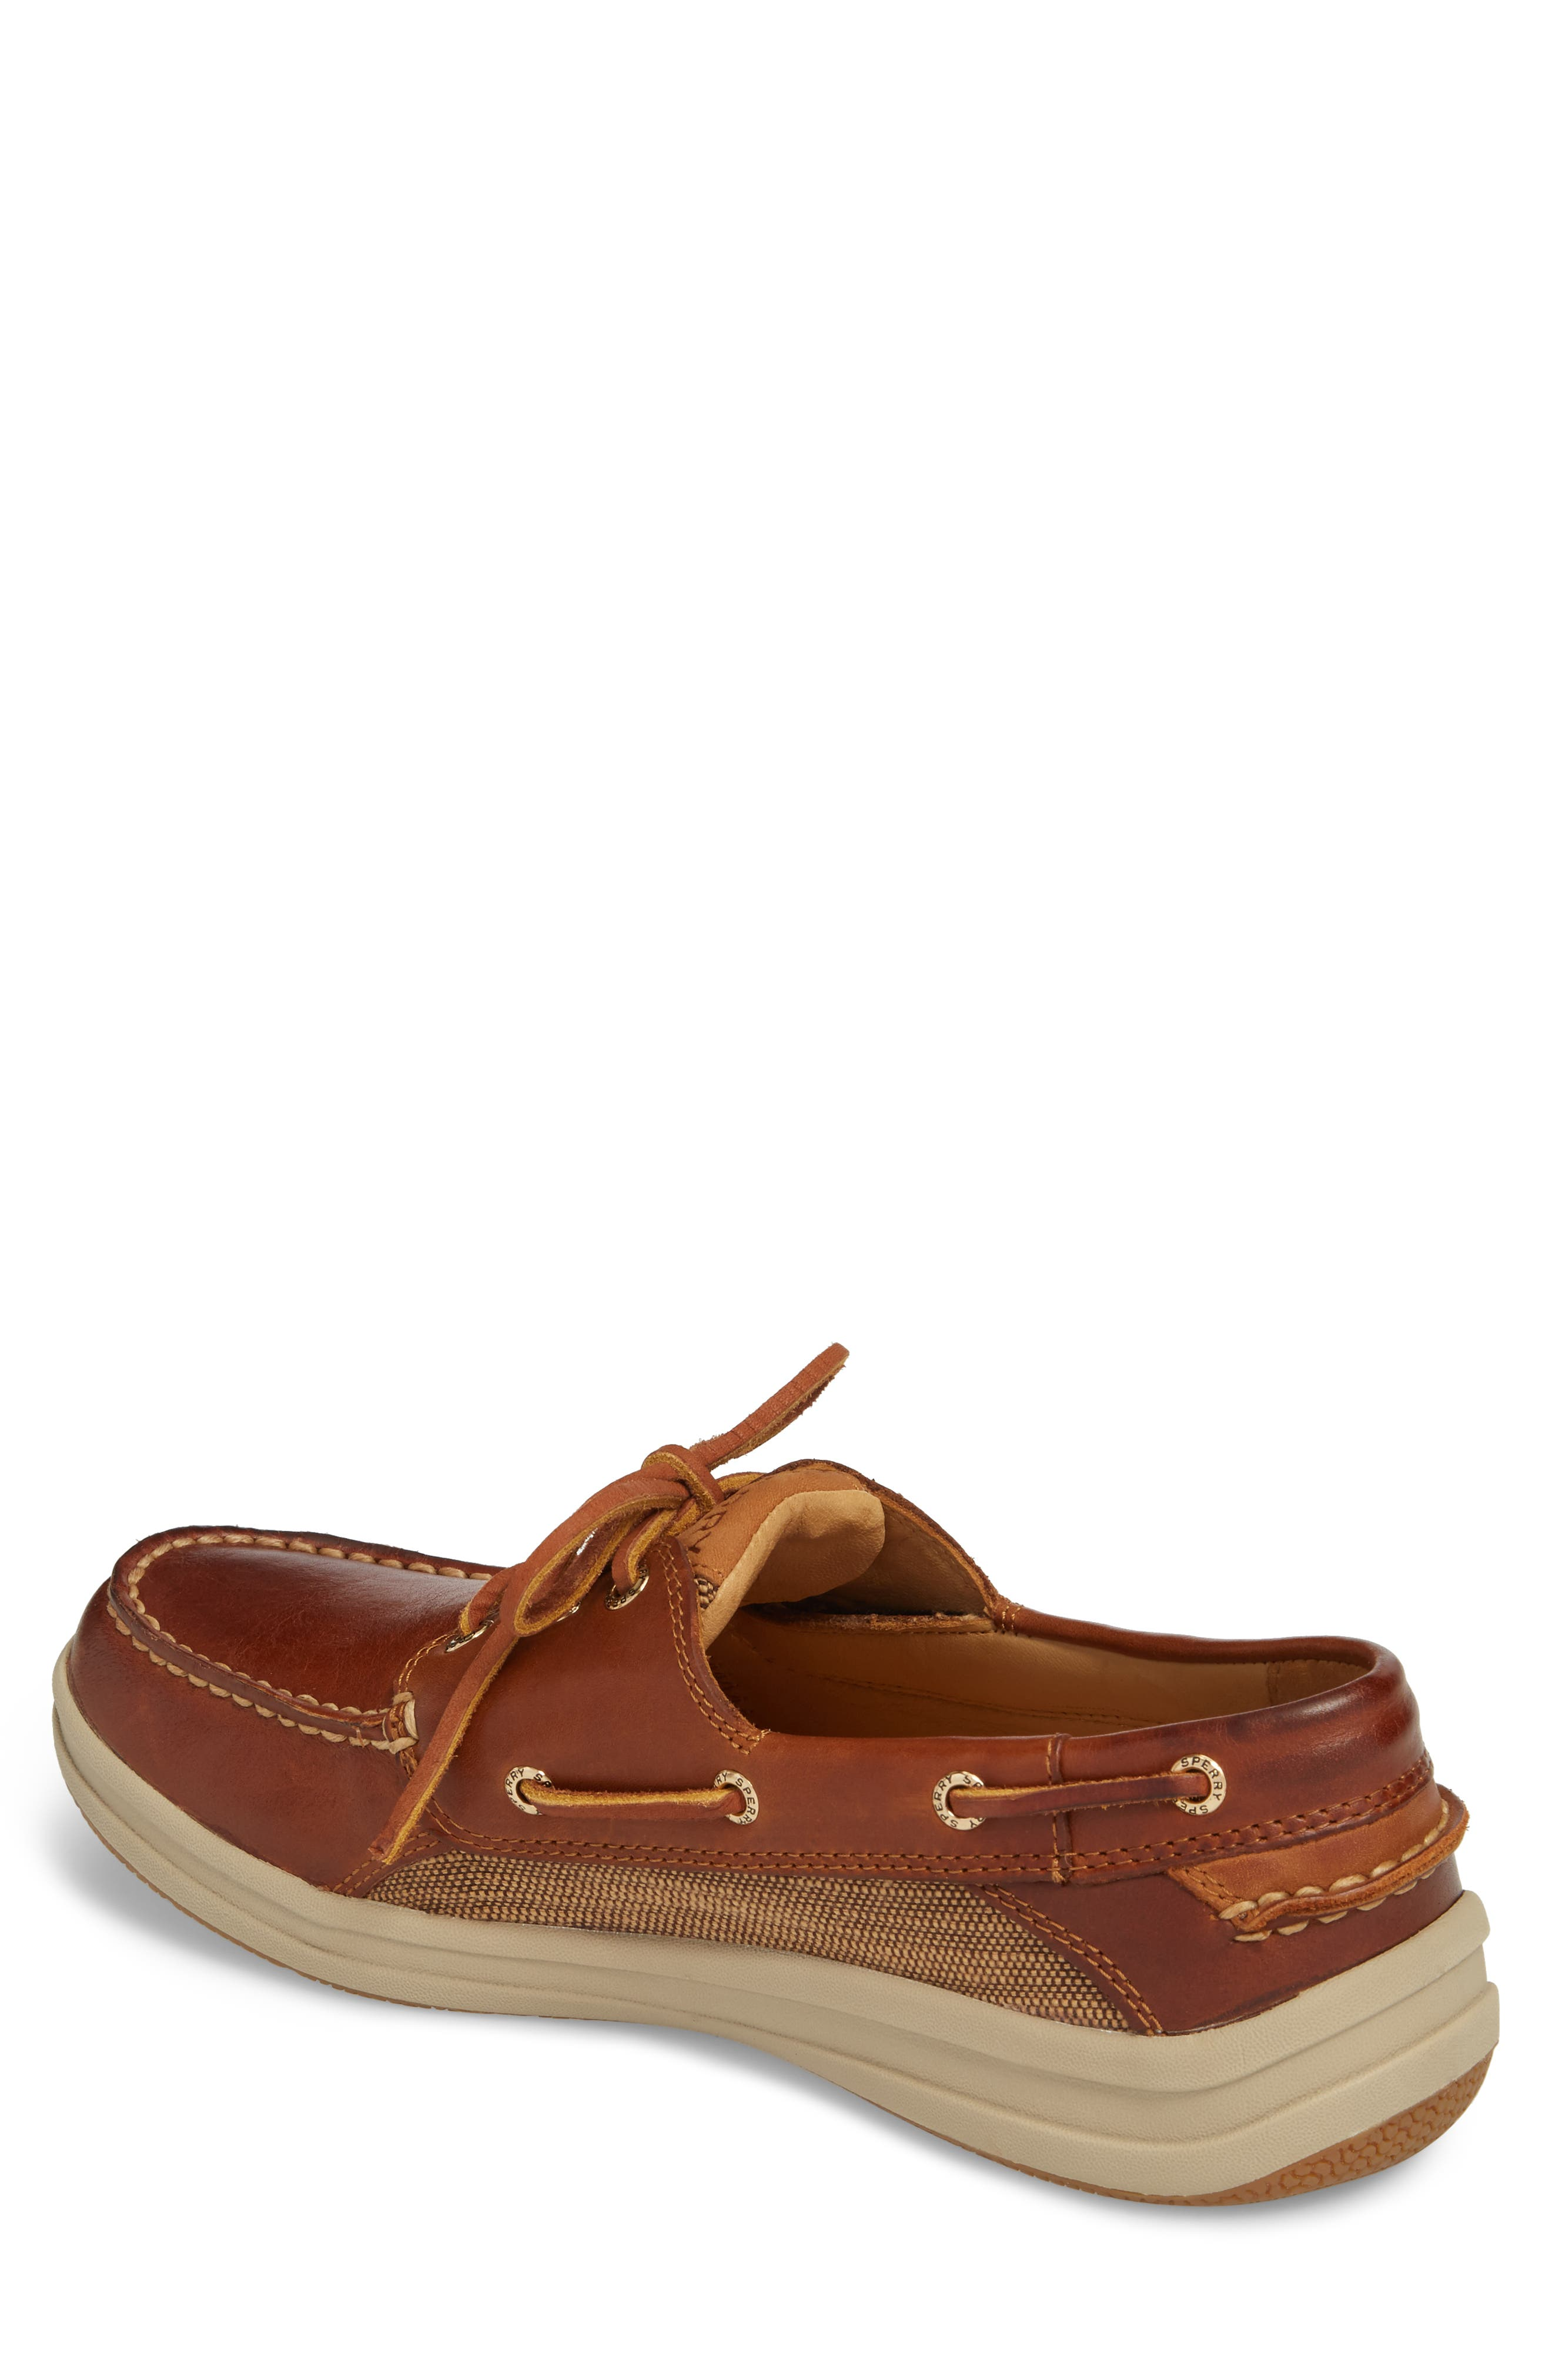 Gold Cup Gamefish Boat Shoe,                             Alternate thumbnail 2, color,                             BROWN LEATHER